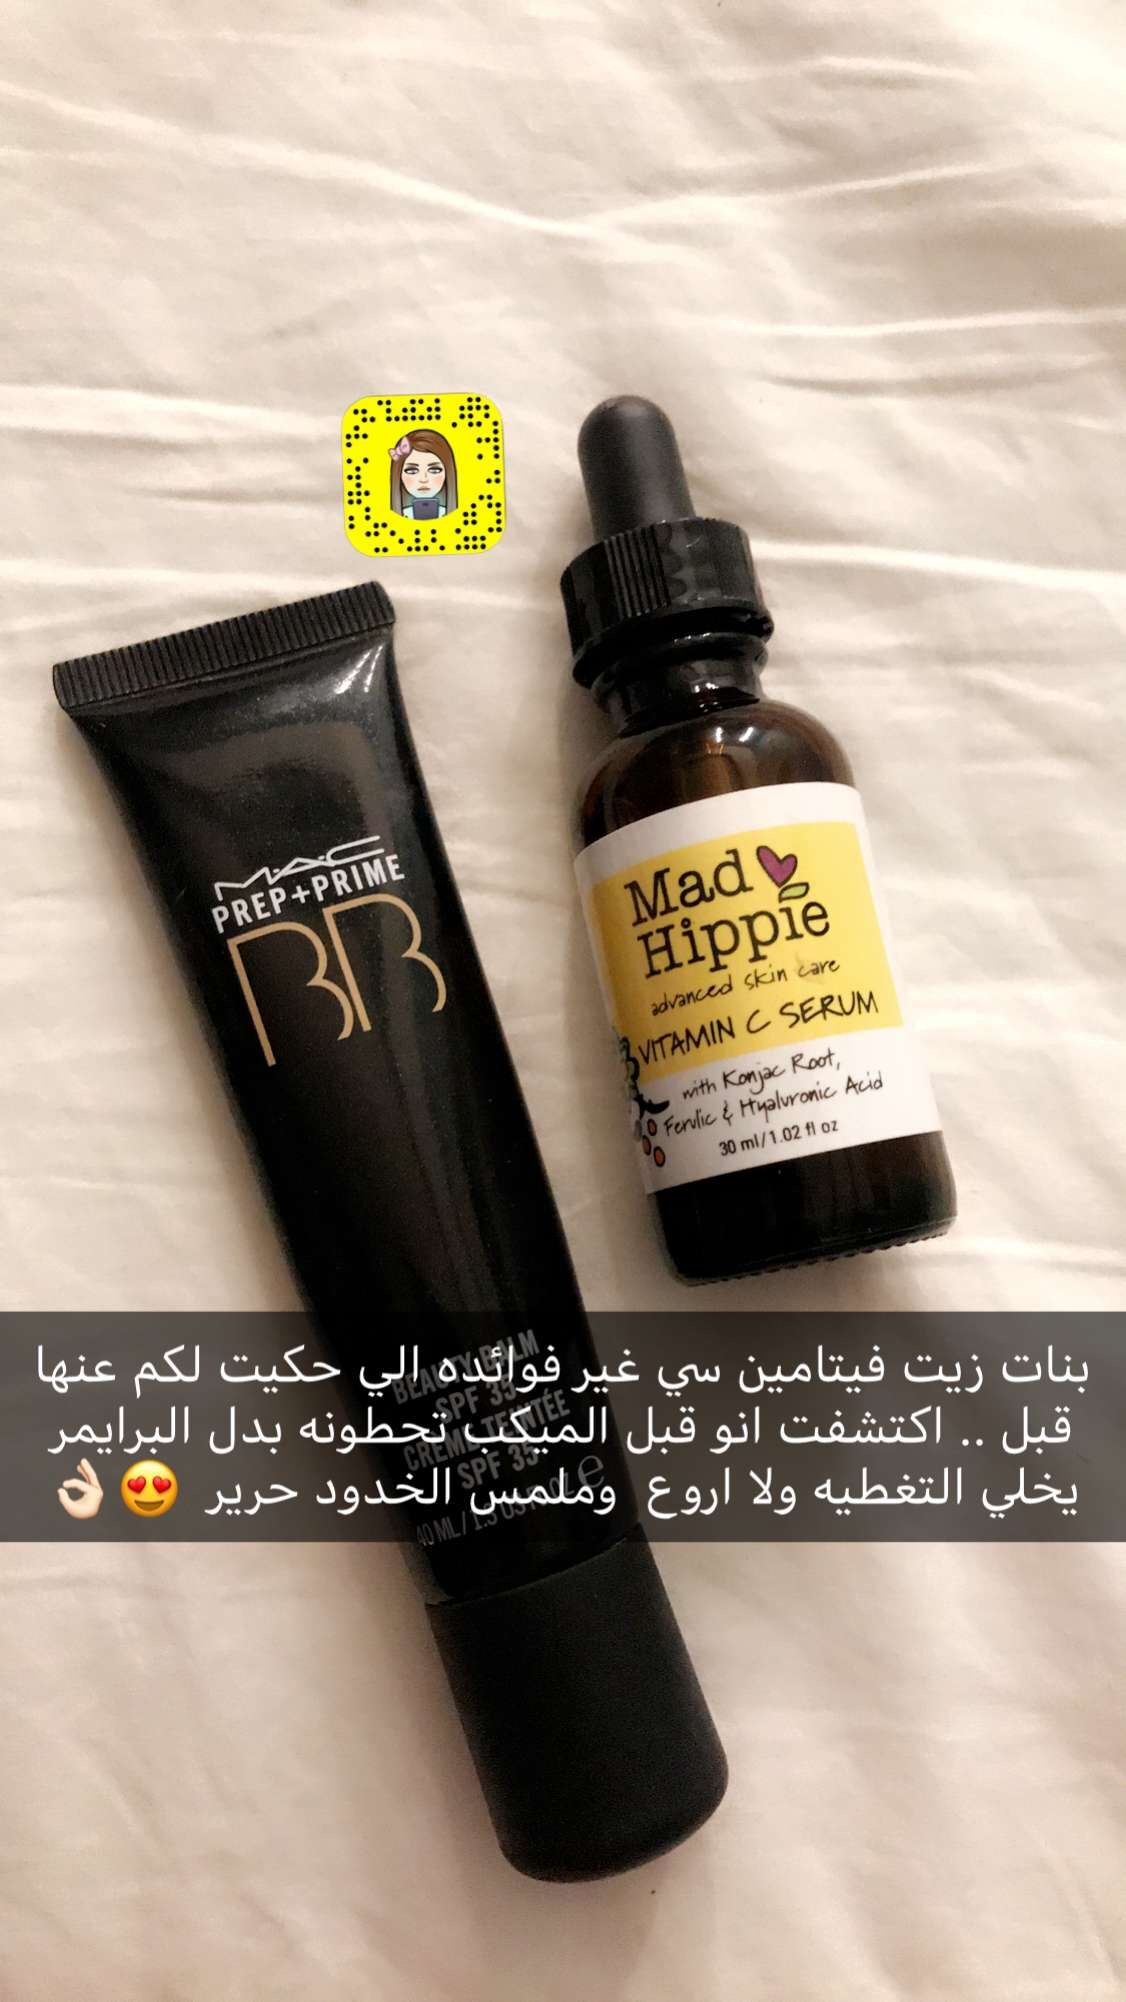 Pin by Noodyta on سناب نوديتا Body skin care, Skin care